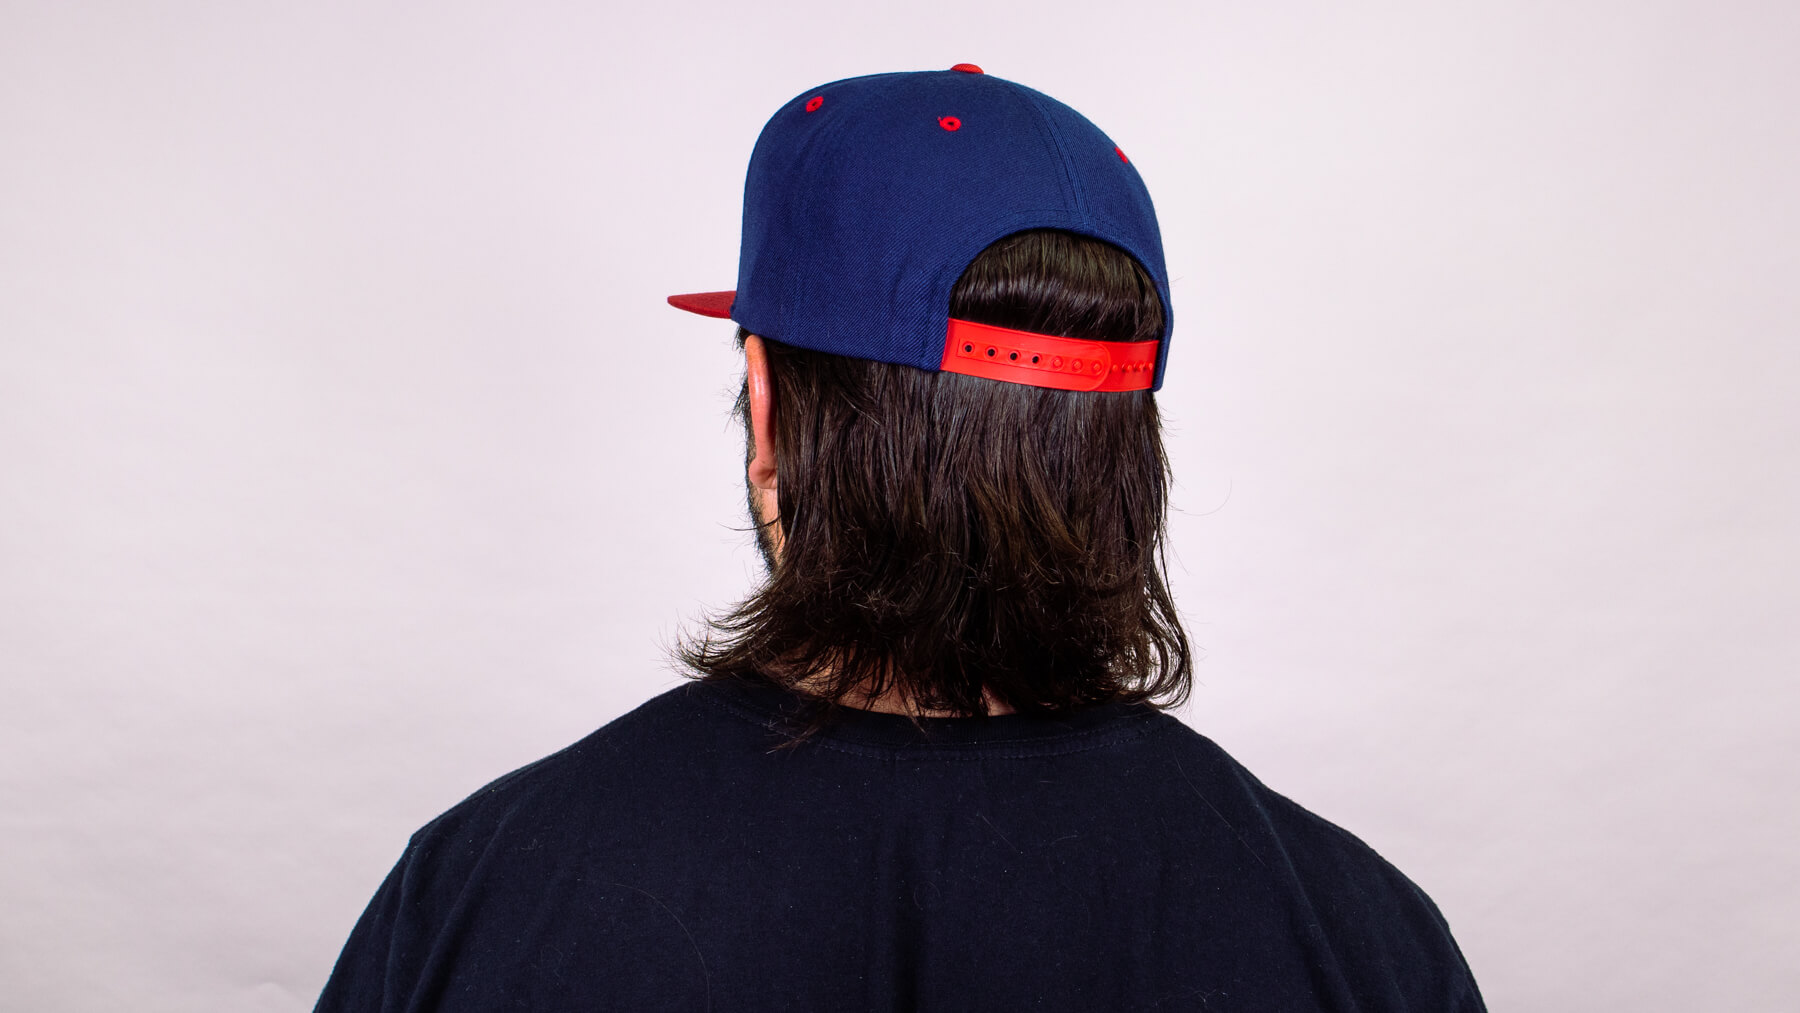 Wearing a hat with awkward stage hairstyle back view